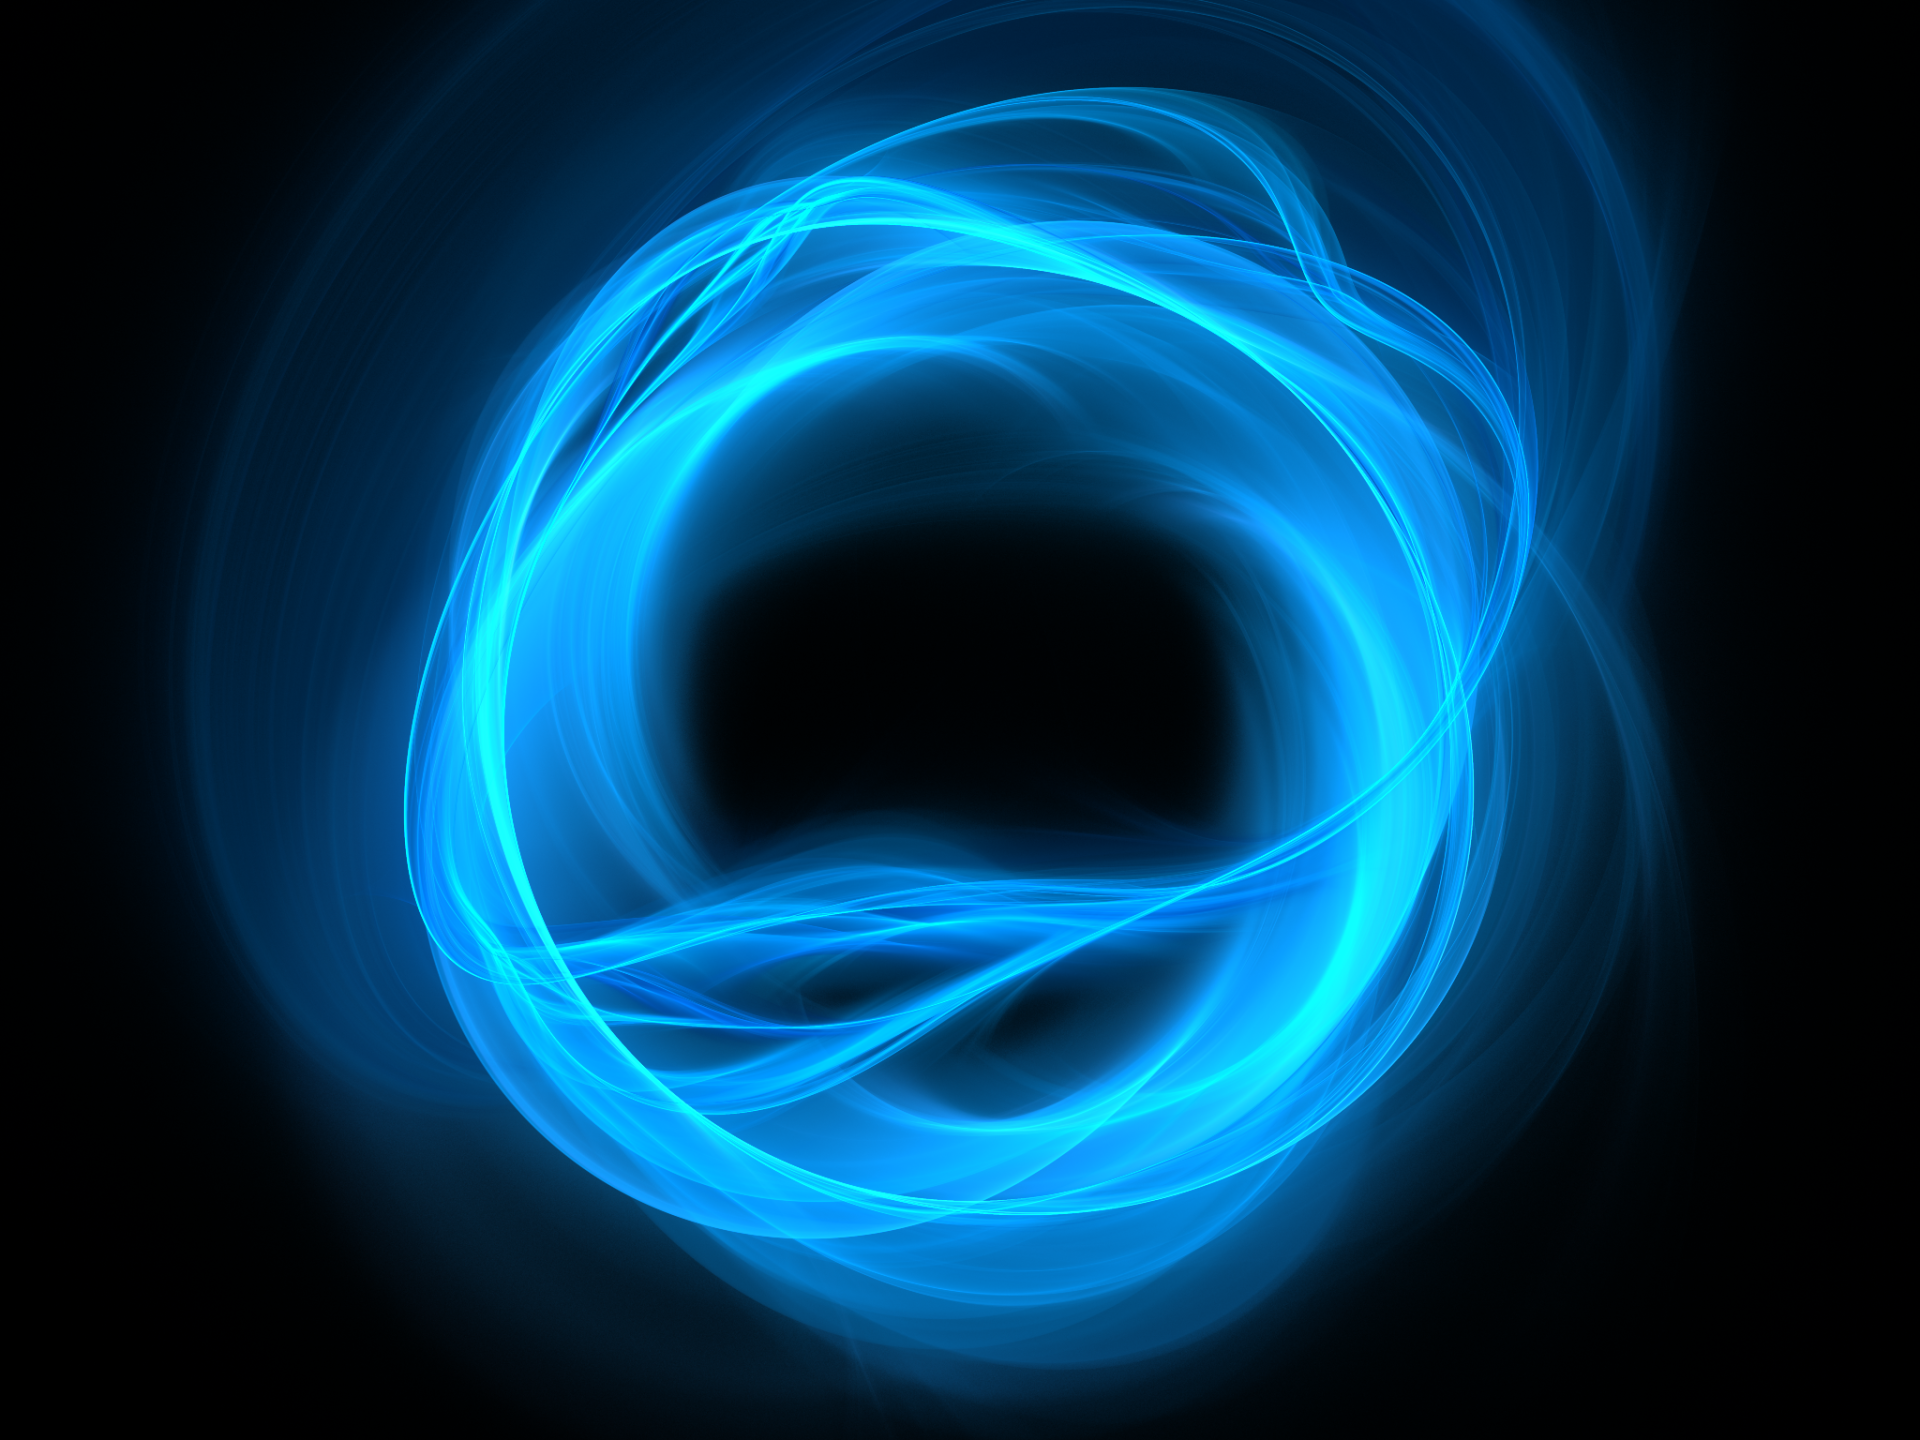 Abstract - Blue  Abstract Apophysis (software) Fractal Circle Wallpaper